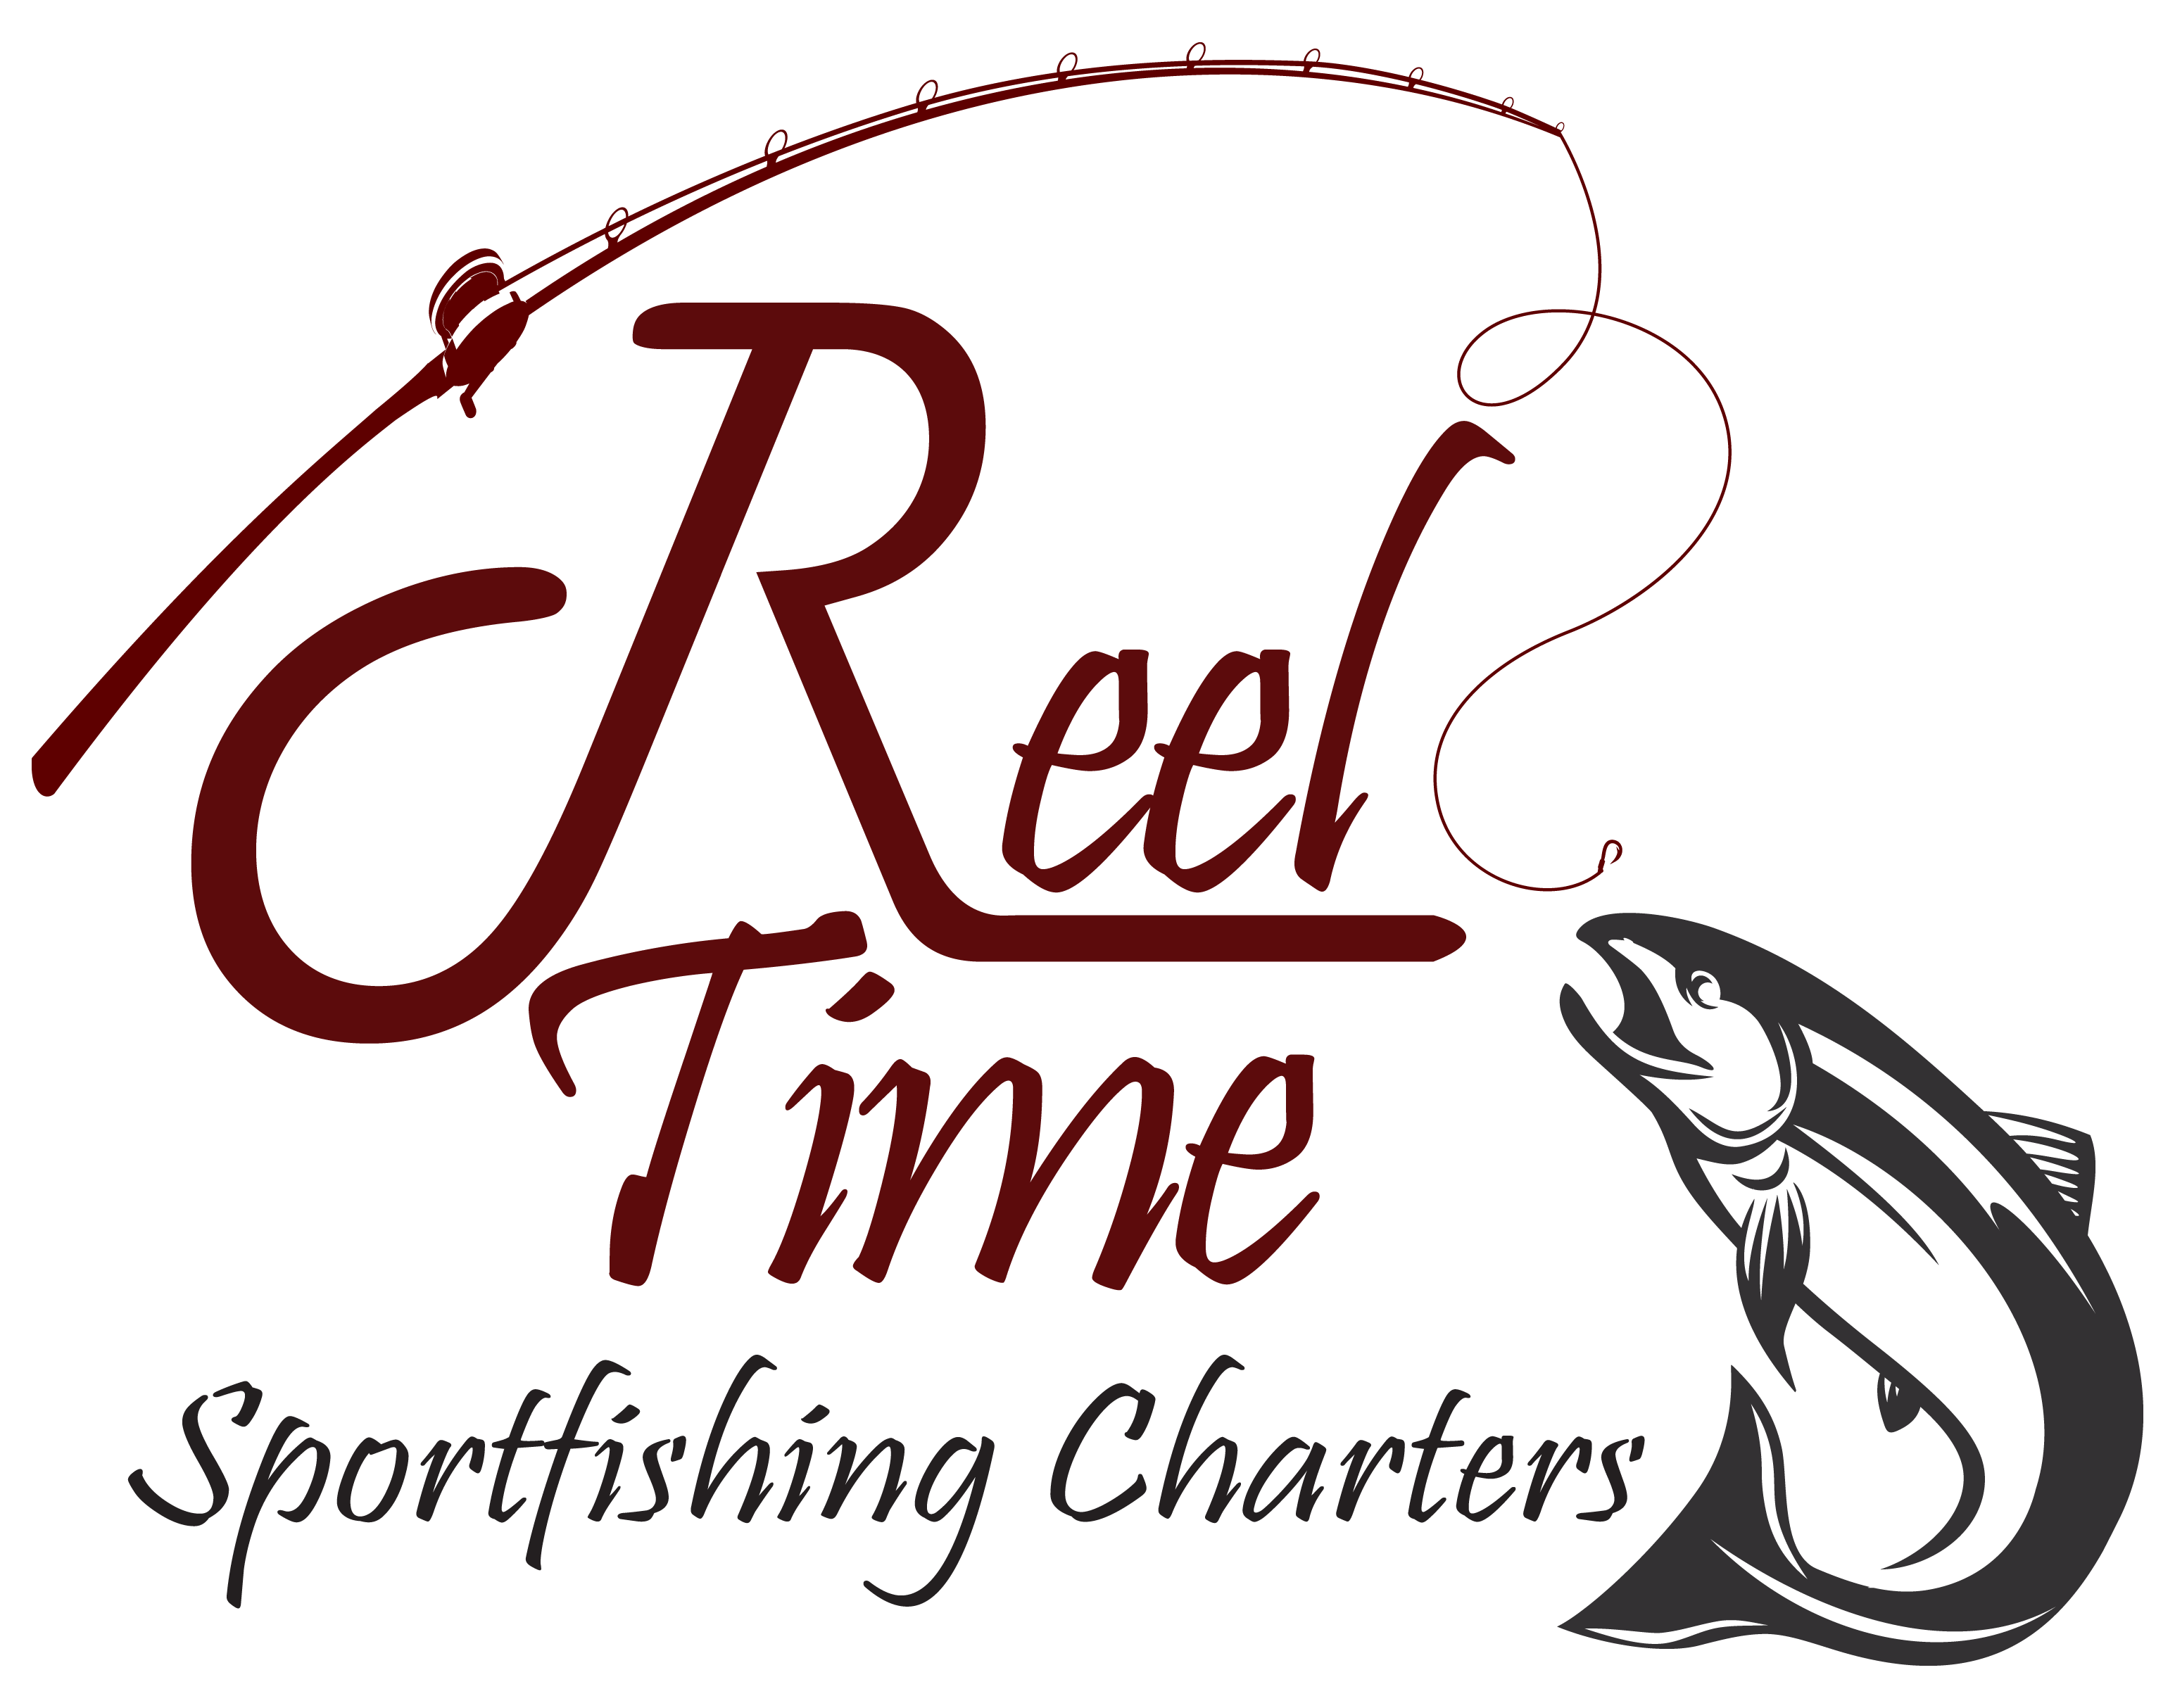 Reel Time Sportfishing